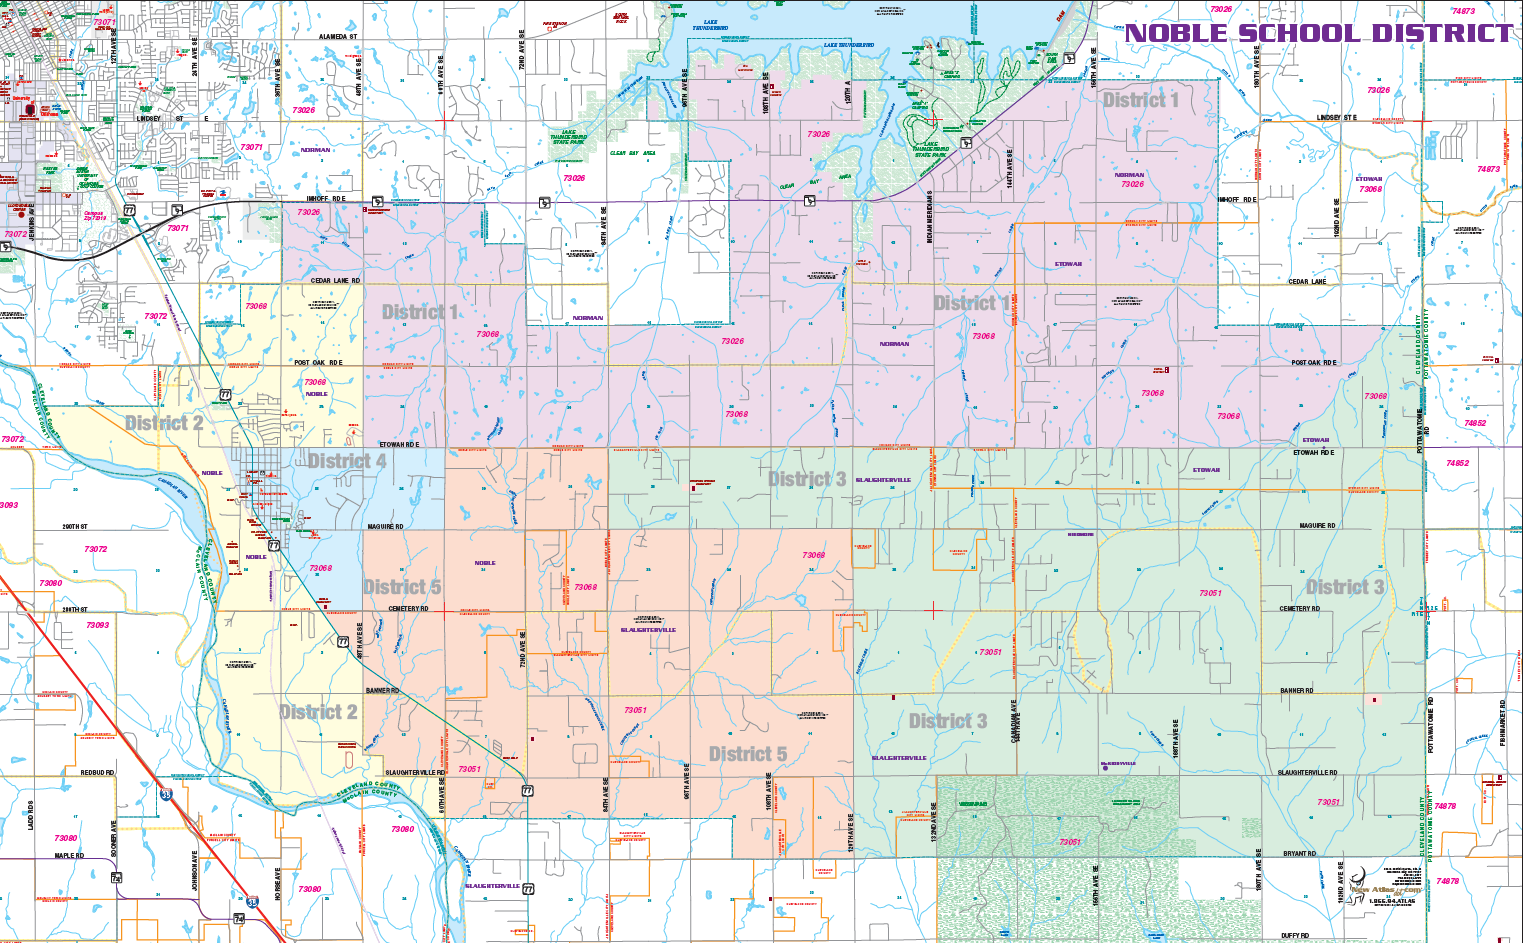 Noble Schools District Map